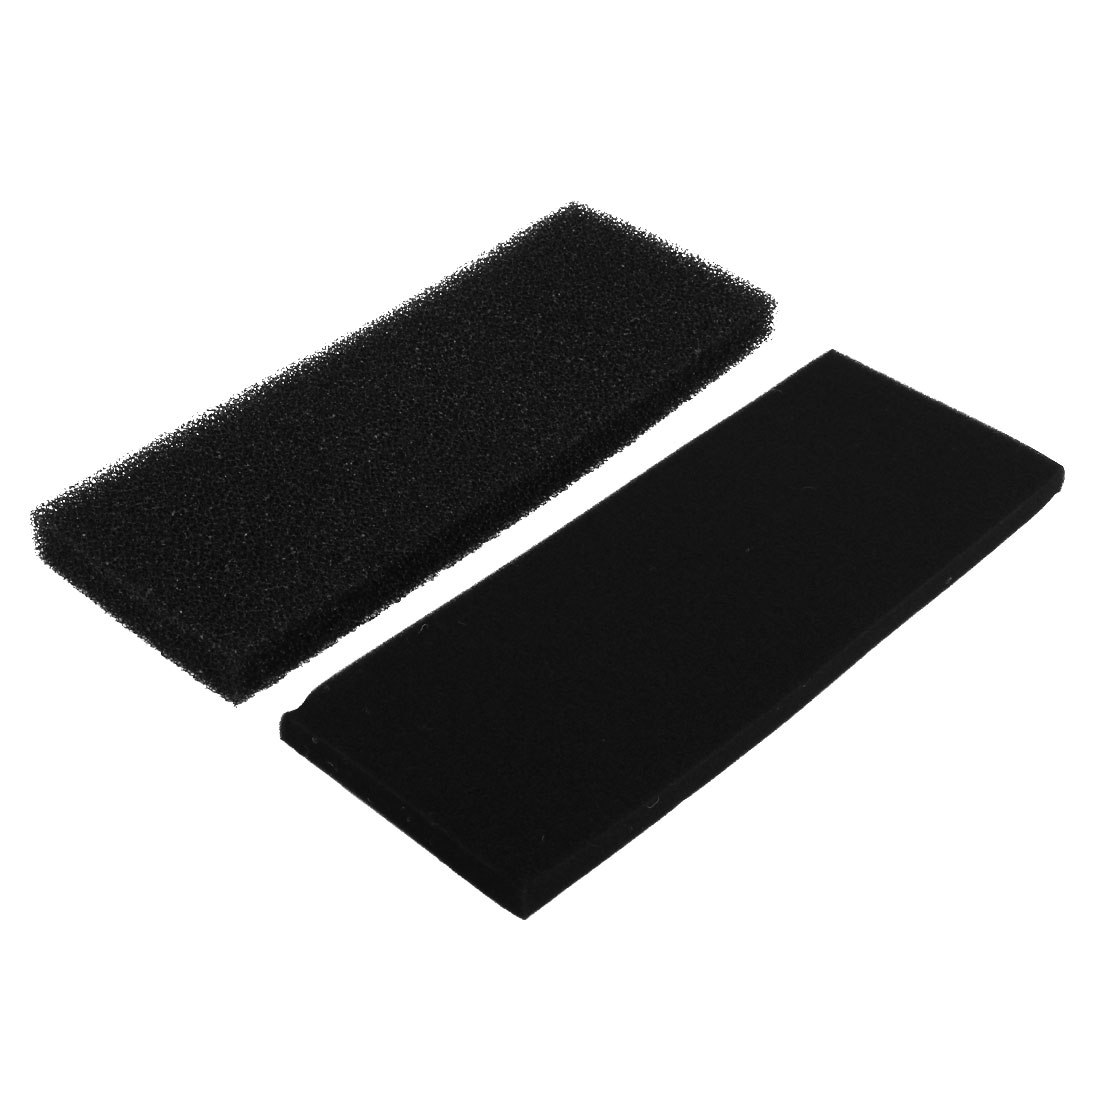 Biochemical Absorbent Sponge Filter Accessory Black 2pcs for Aquarium Fish Tank